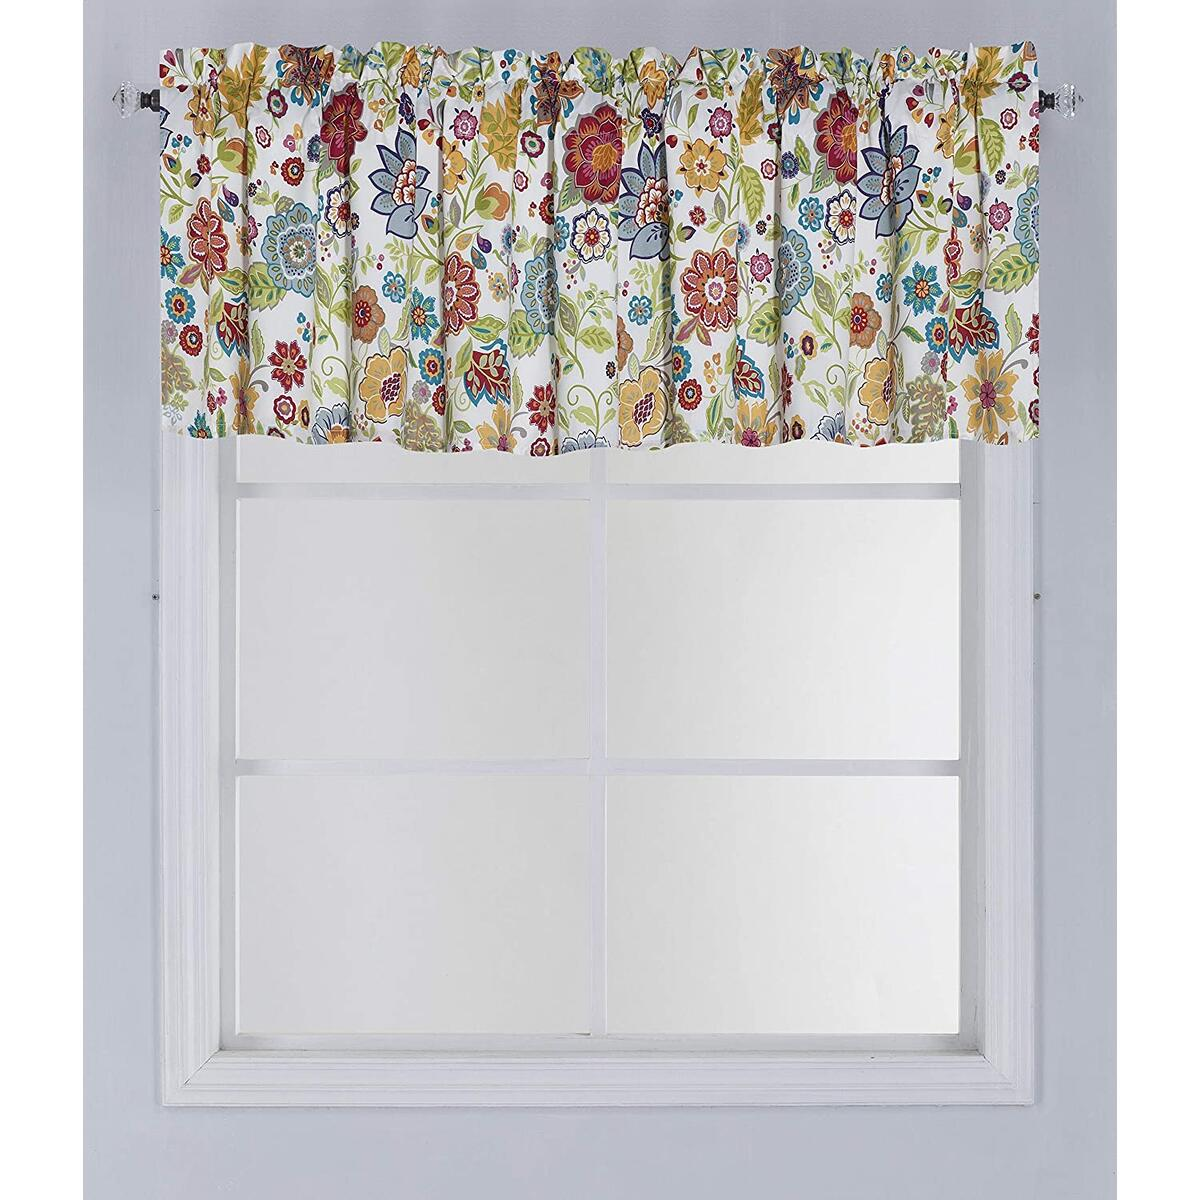 1pc Microfiber Printed Window Curtain with Rod Pocket Double Layer Floral Panel (1pc 84X18)